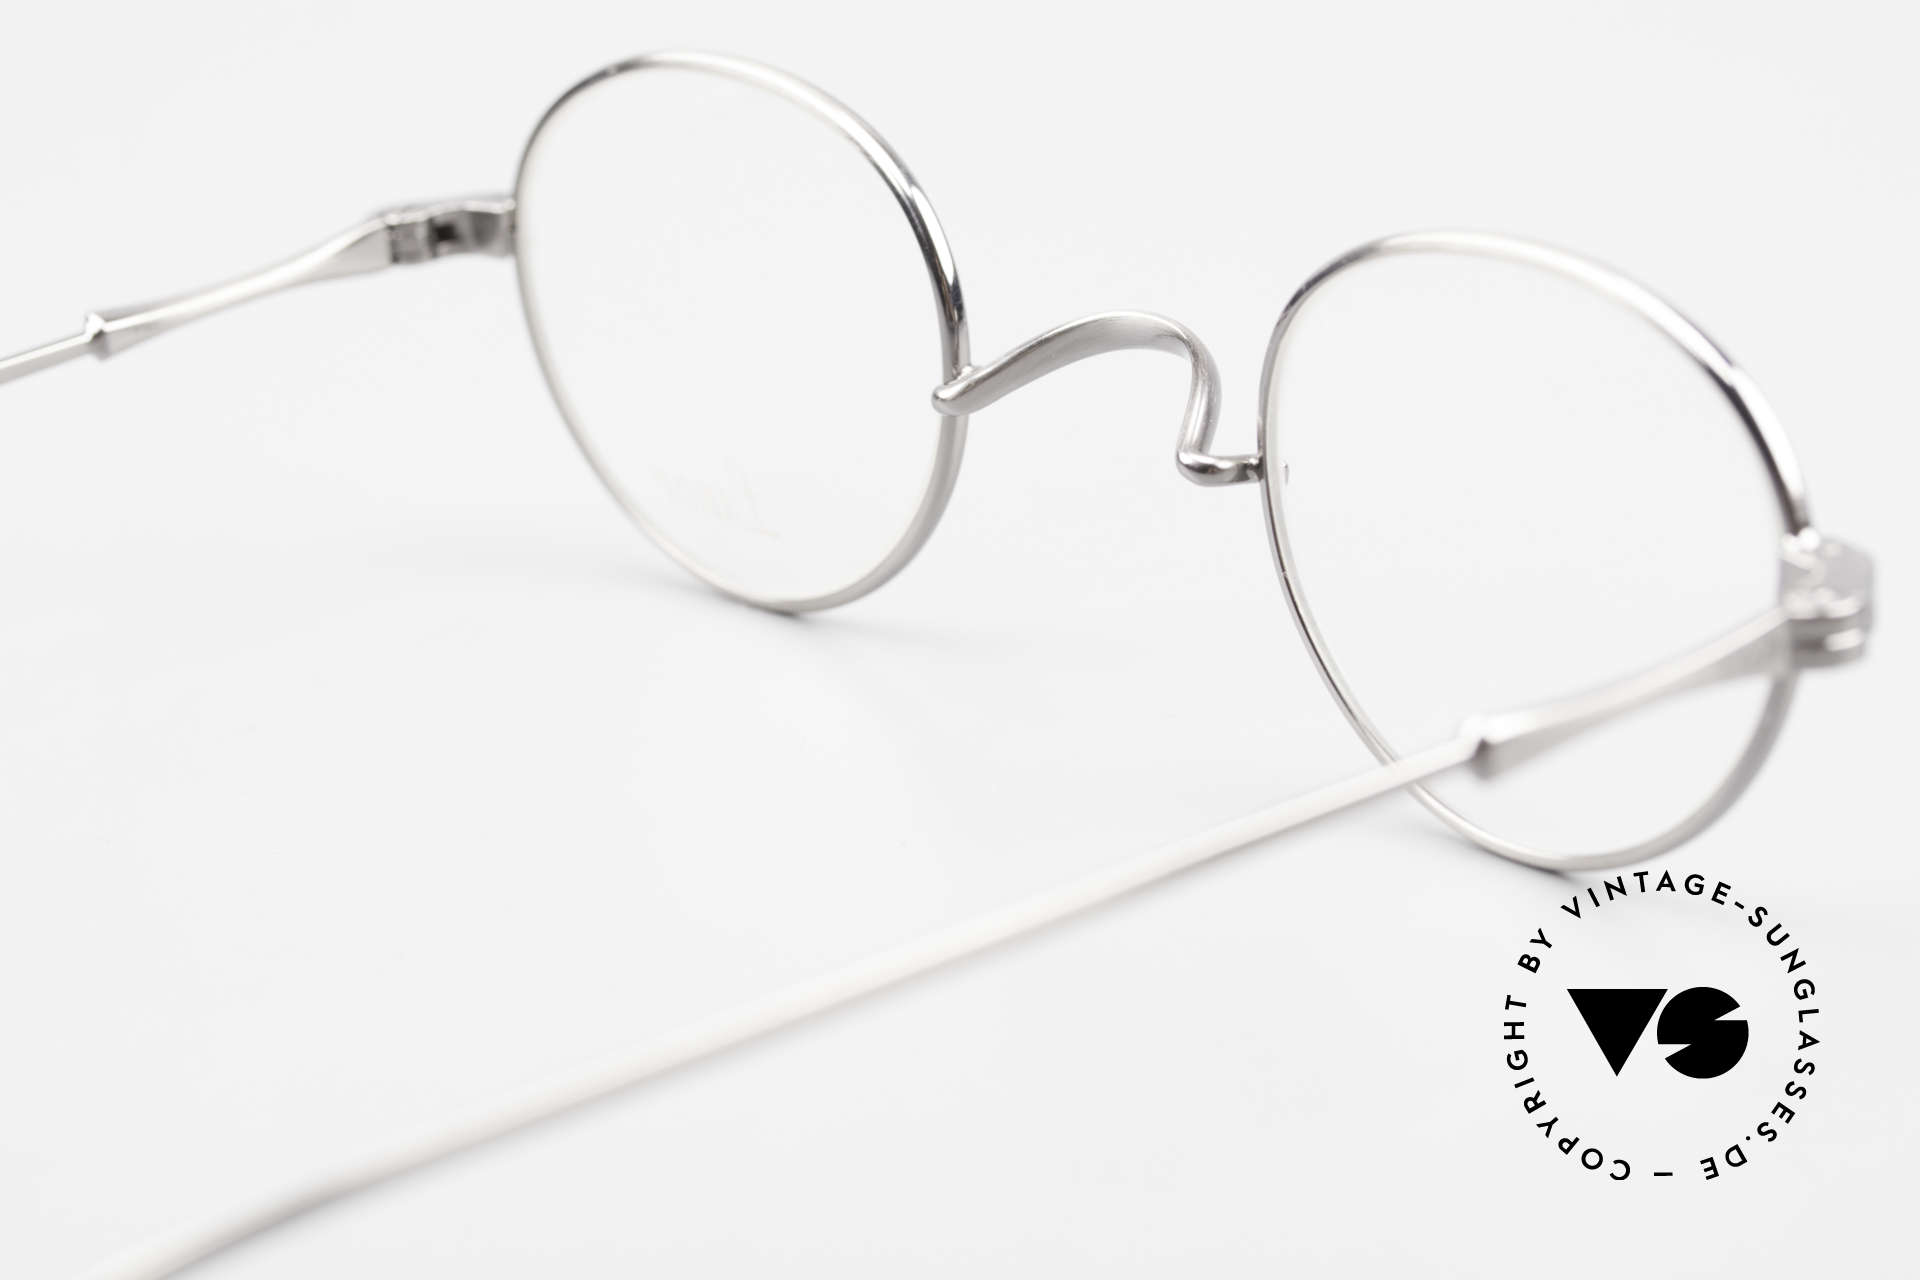 Lunor II 20 Lunor Eyeglasses Unisex Small, this quality frame can be glazed with lenses of any kind, Made for Men and Women